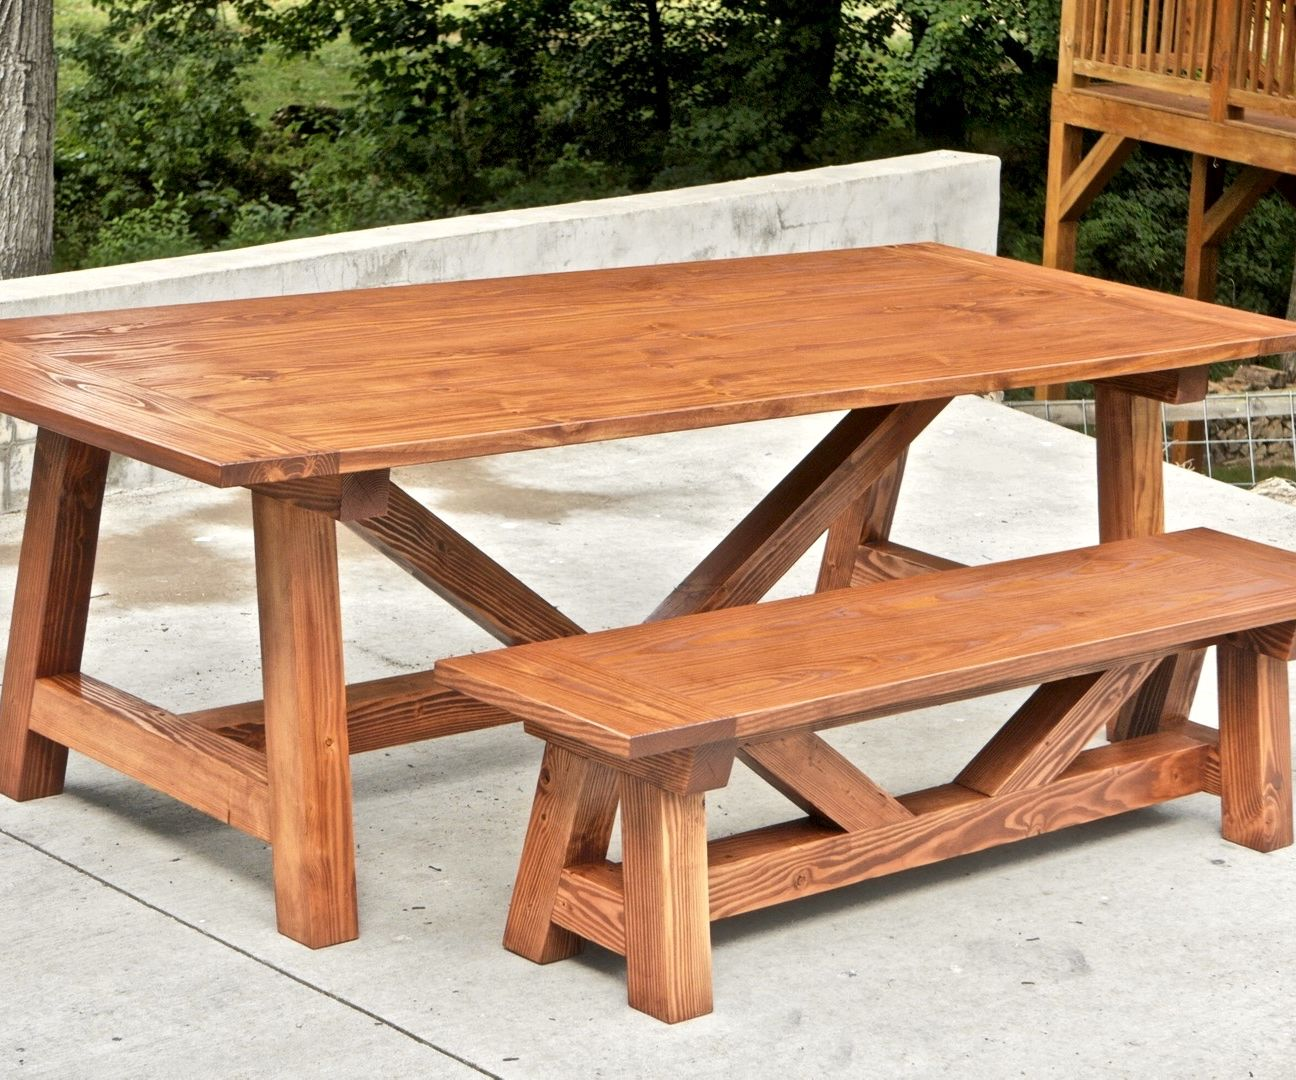 Picture of: How To Build A Farmhouse Table And Benches For 250 Woodworking Diy 10 Steps With Pictures Instructables